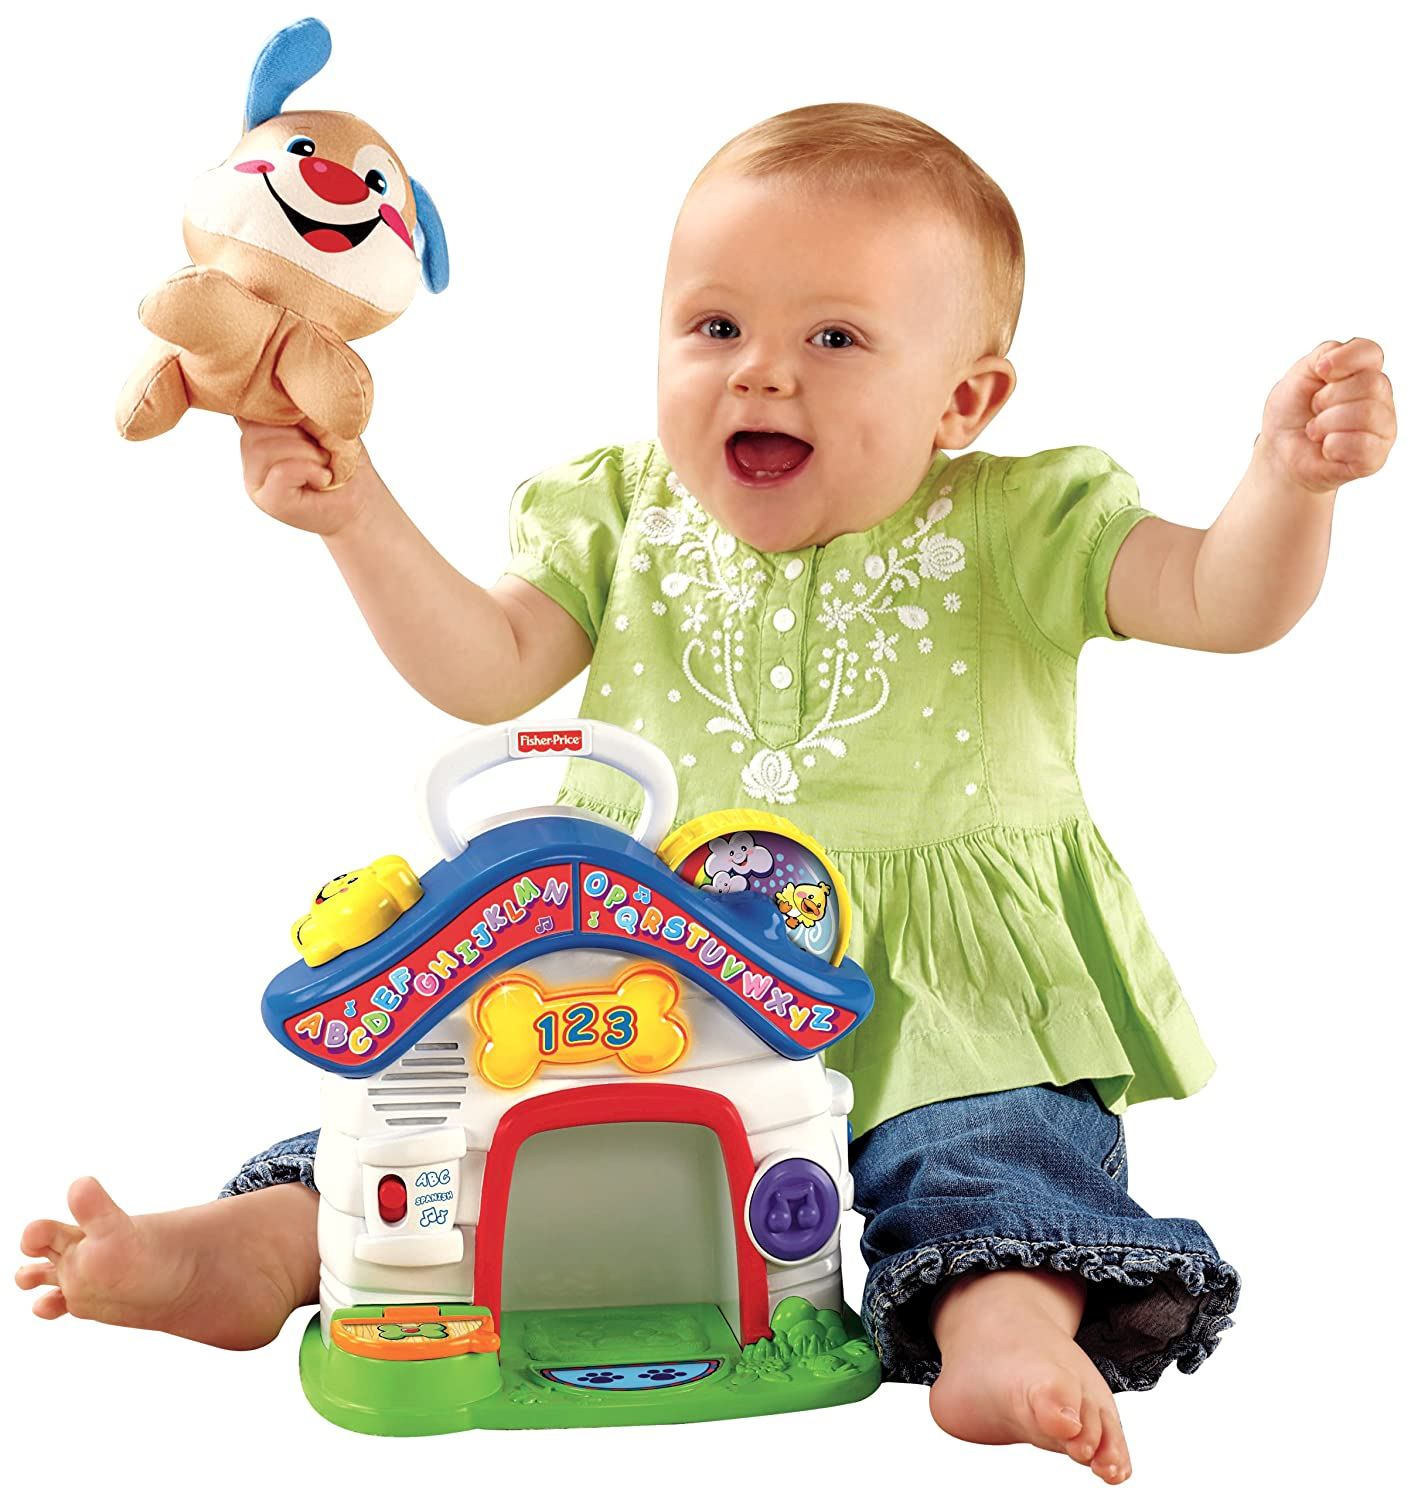 Fisher Price Laugh and Learn Puppys Playhouse